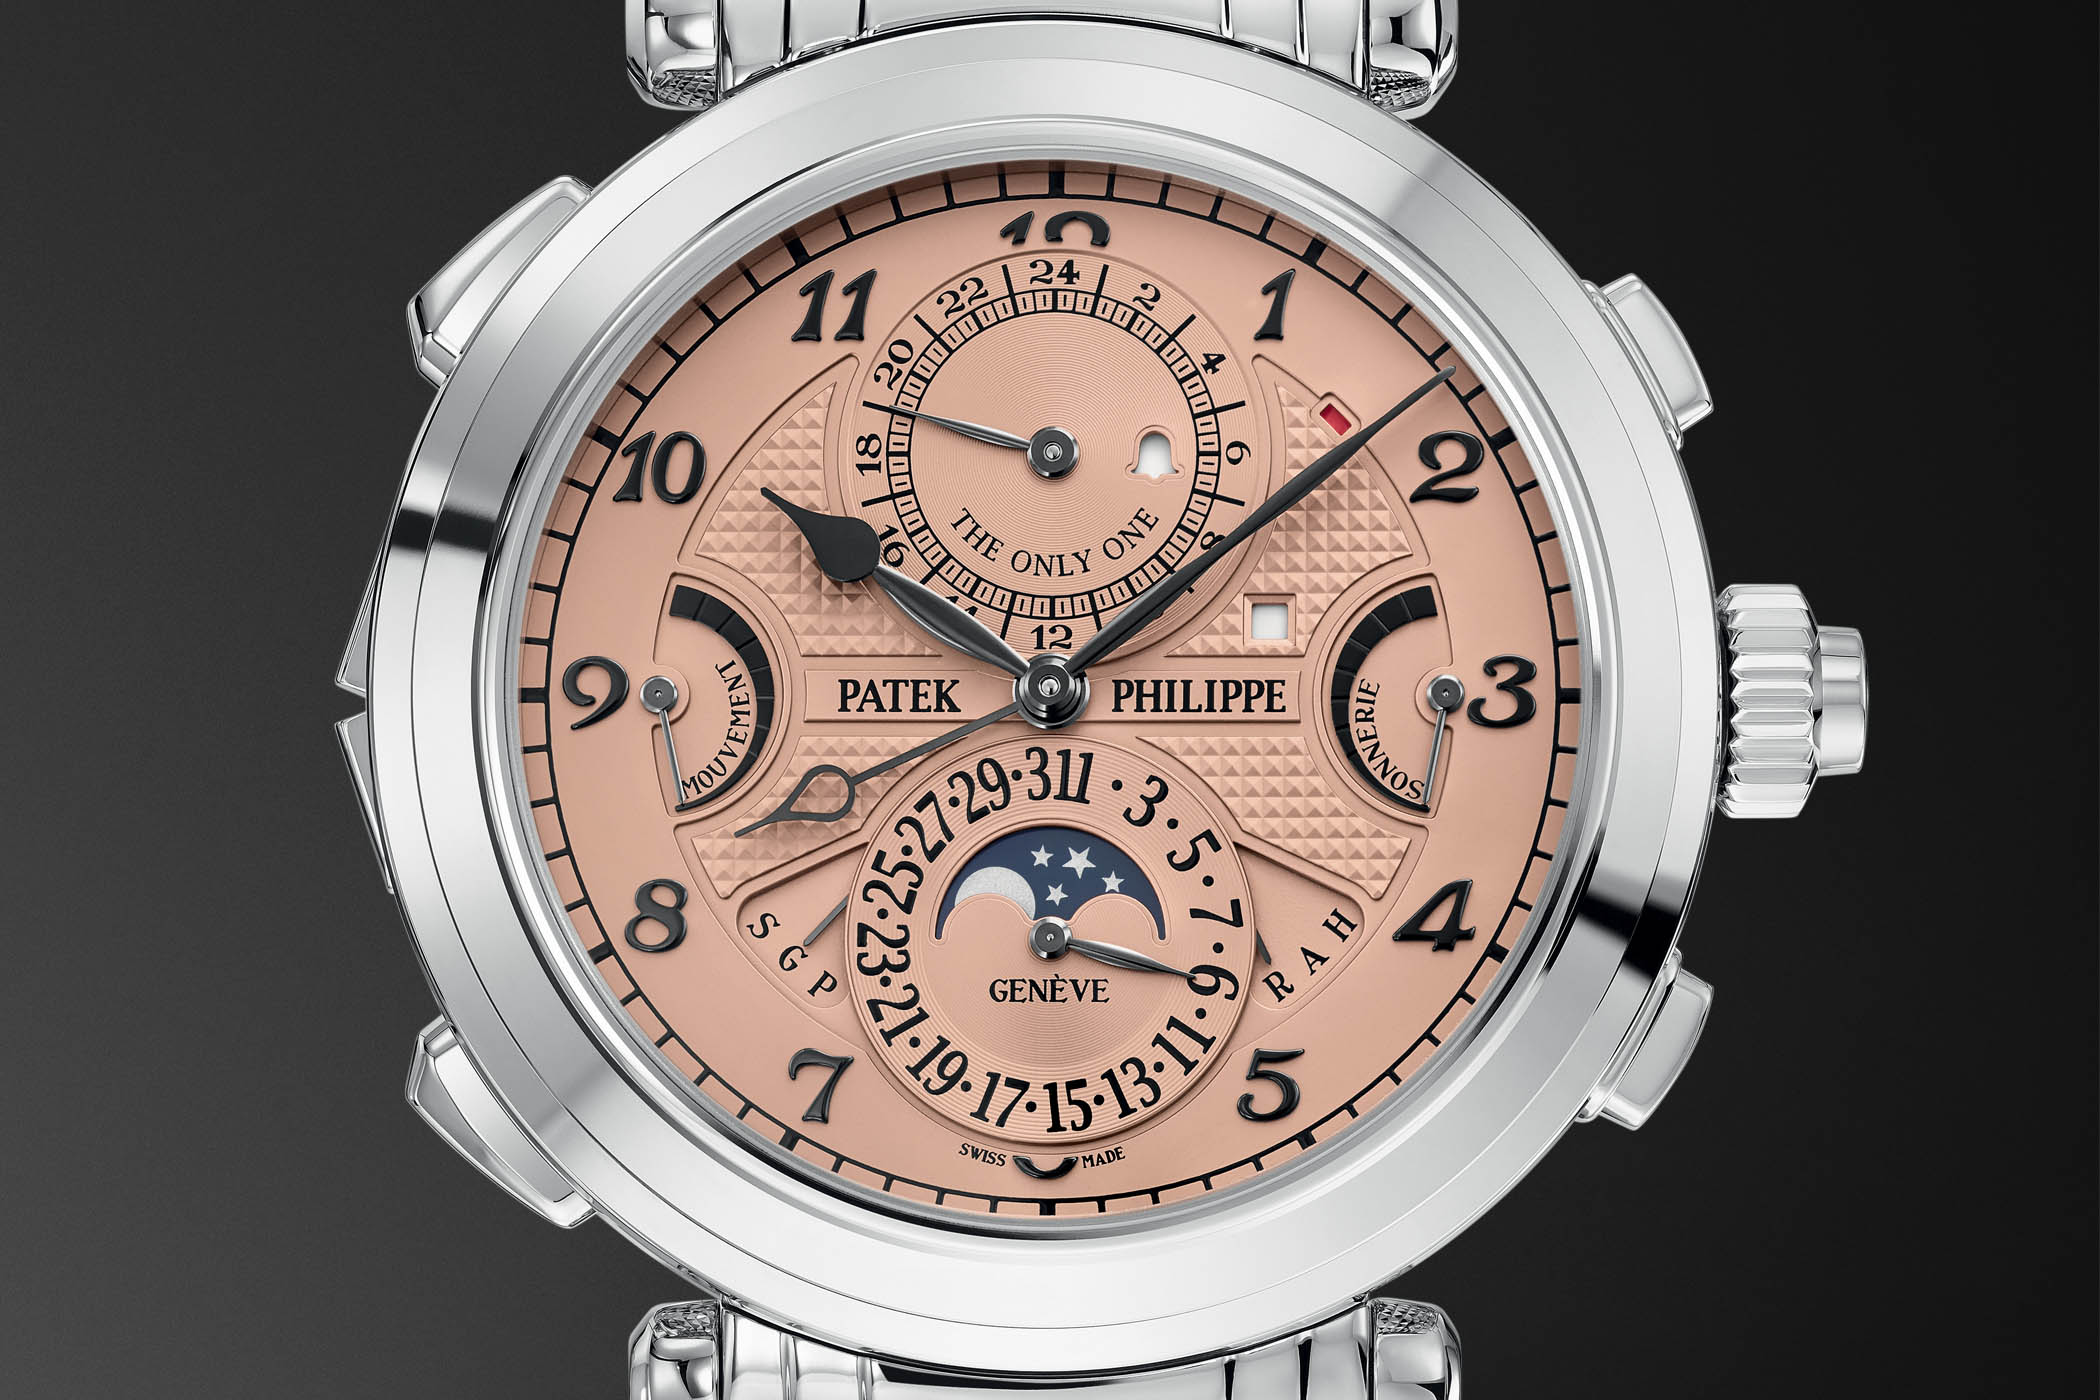 Only Watch 2019 - Patek Philippe 6300A Steel grandmaster chime